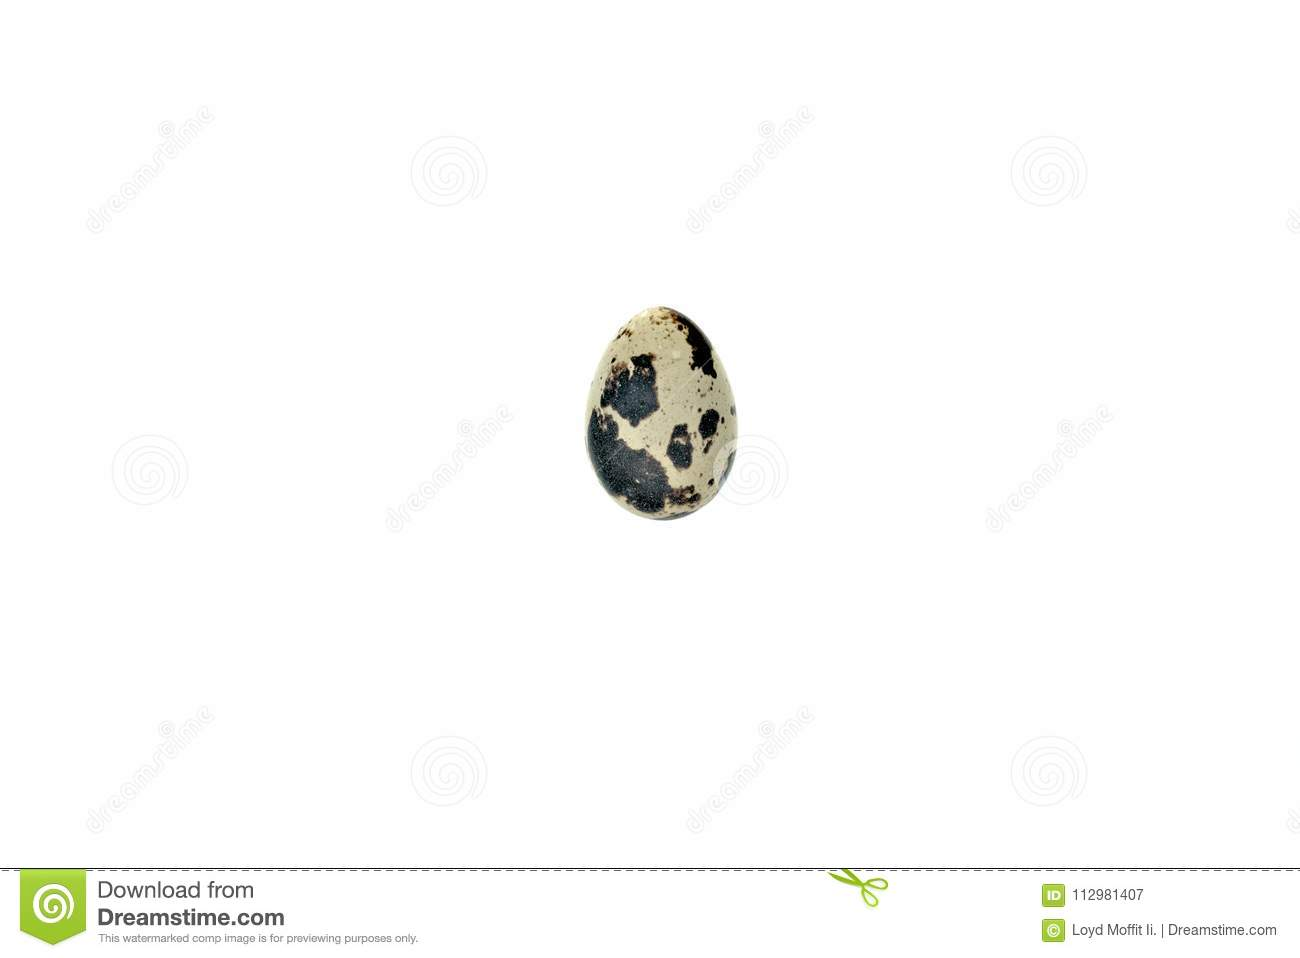 A single quail egg on an all white background.